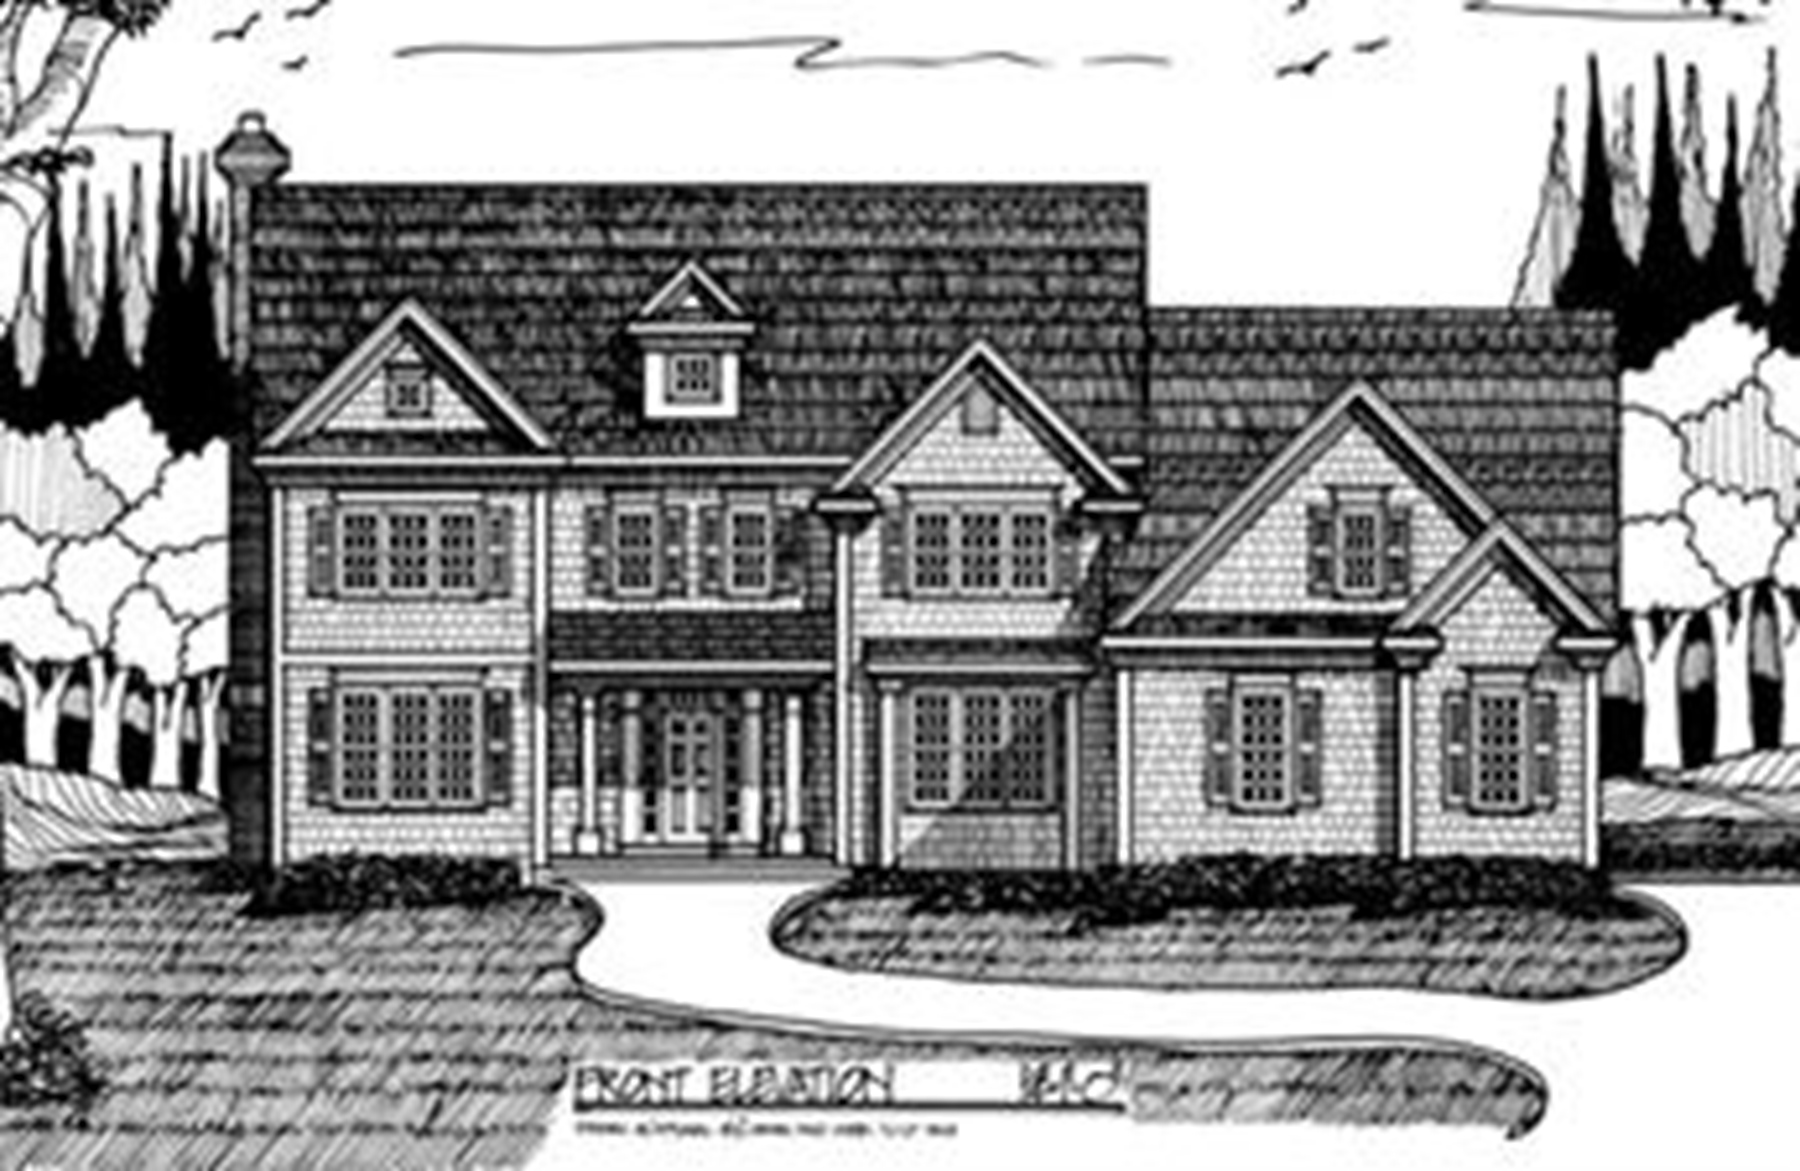 Casa Unifamiliar por un Venta en Highland Park Open Concept Monroe Model Lot 19 Stoney Brook Road Hopkinton, Massachusetts 01748 Estados Unidos